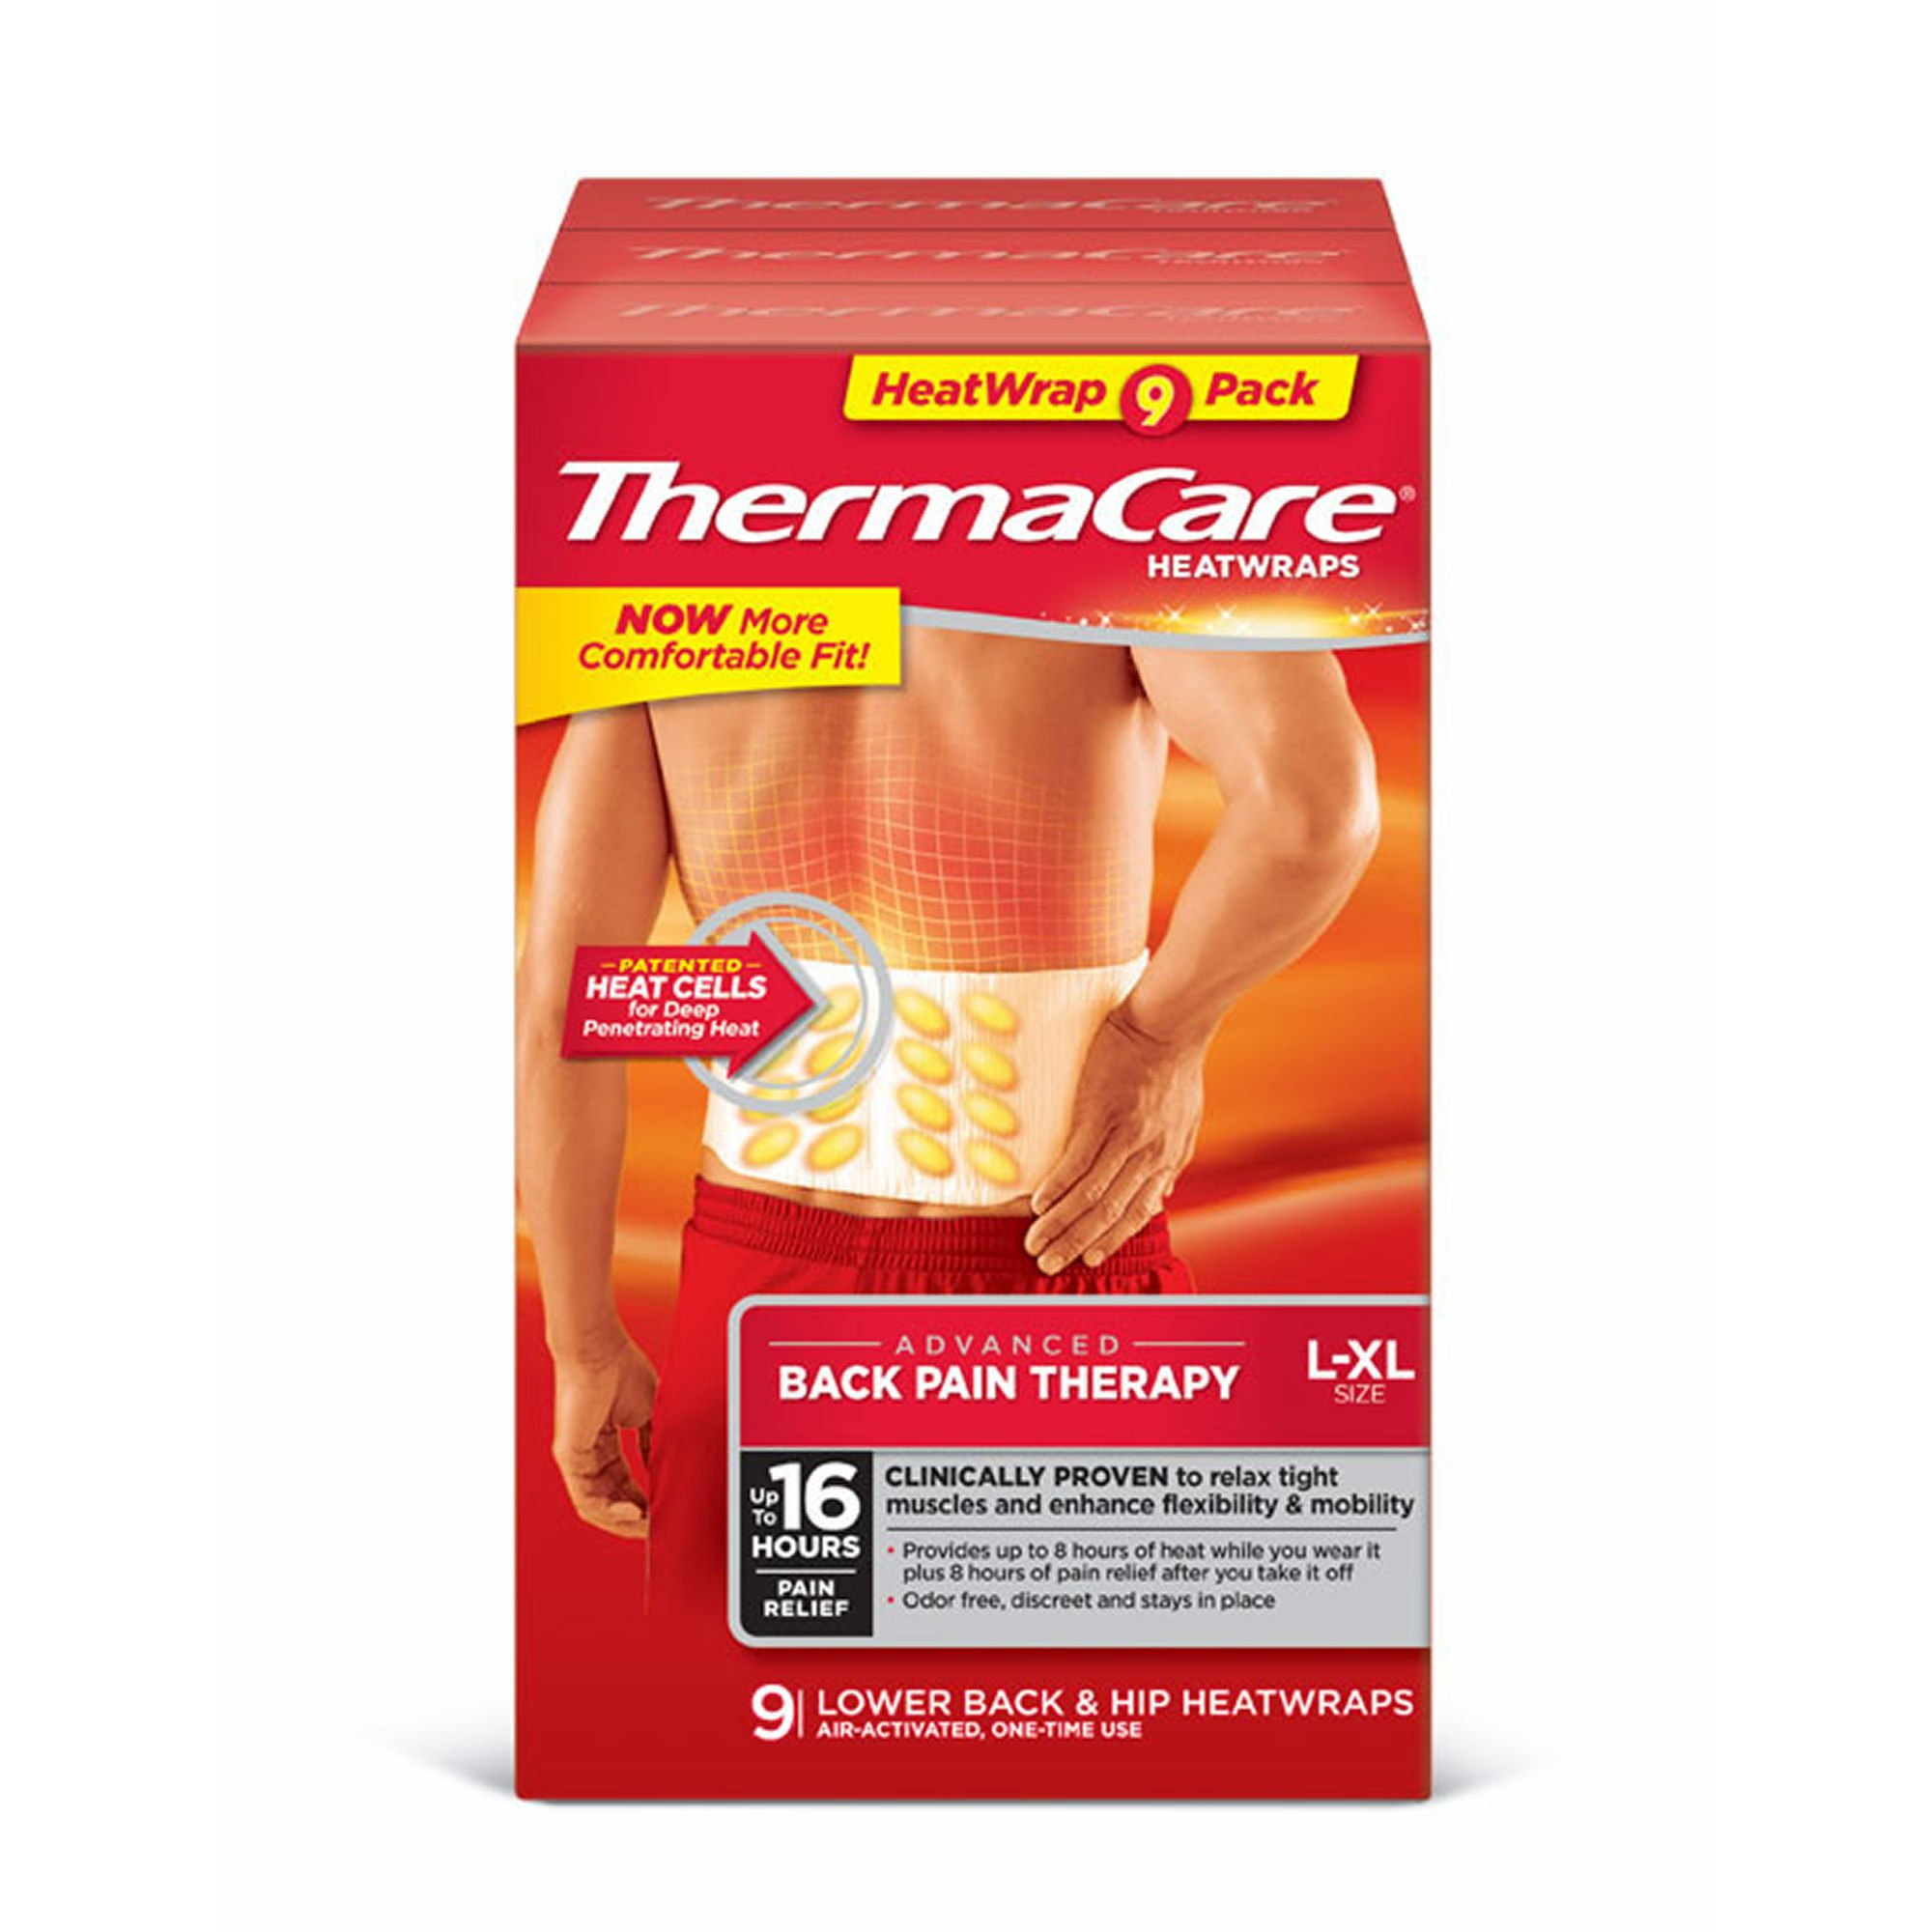 ThermaCare Lower Back and Hip Heat Wraps, 9 ct. (pack of 6) by ThermaCare